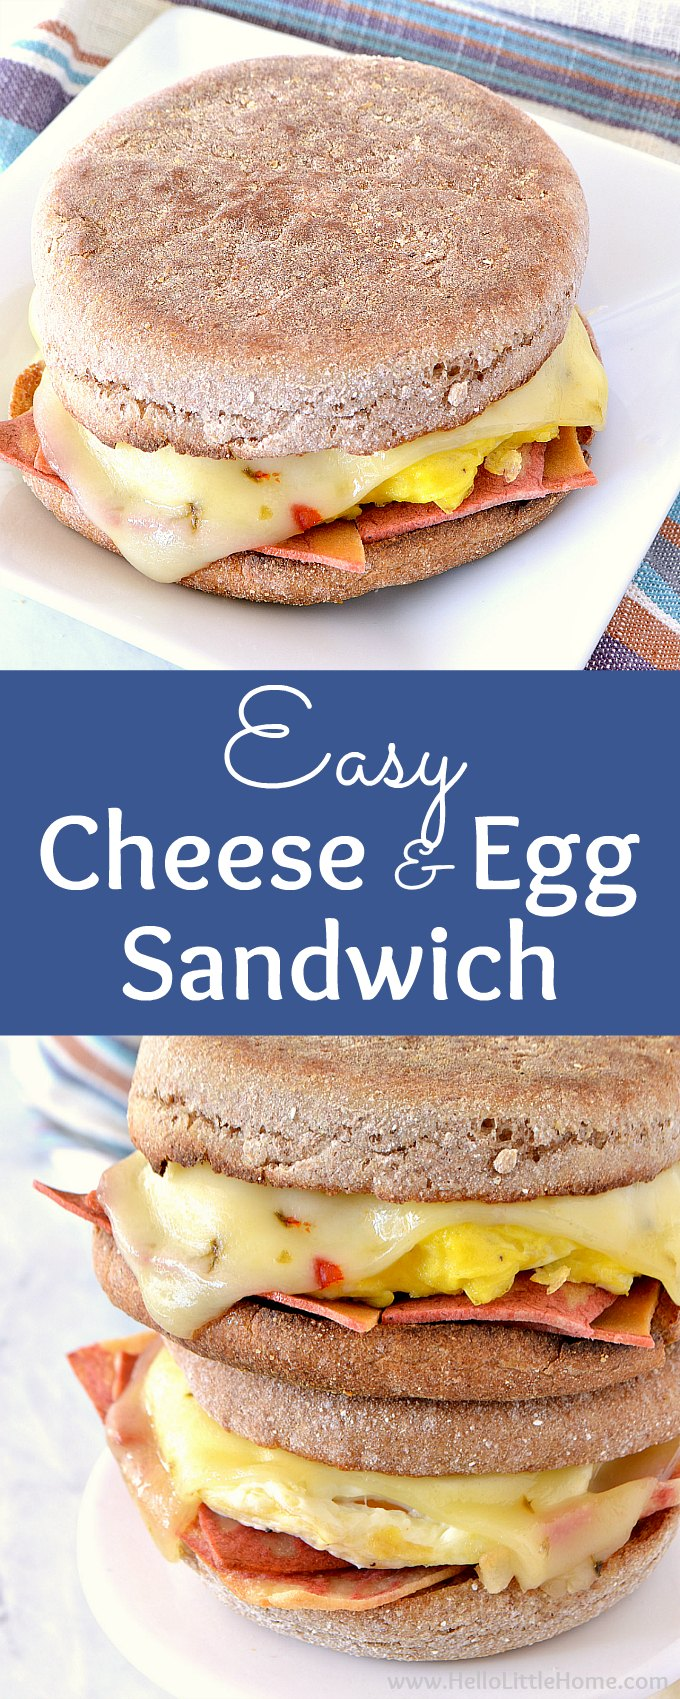 Easy Cheese and Egg Breakfast Sandwich recipe … the perfect healthy egg breakfast sandwich to start your mornings! This simple vegetarian egg sandwich is meatless and made with fried eggs or scrambled eggs, your fave cheese, and English Muffins (veggie bacon is optional). Make this homemade breakfast sandwich with no meat in minutes, then enjoy at home or on the go! | Hello Little Home #healthybreakfast #breakfastrecipes #breakfastsandwich #eggsandwich #vegetarianrecipes #breakfast #friedegg